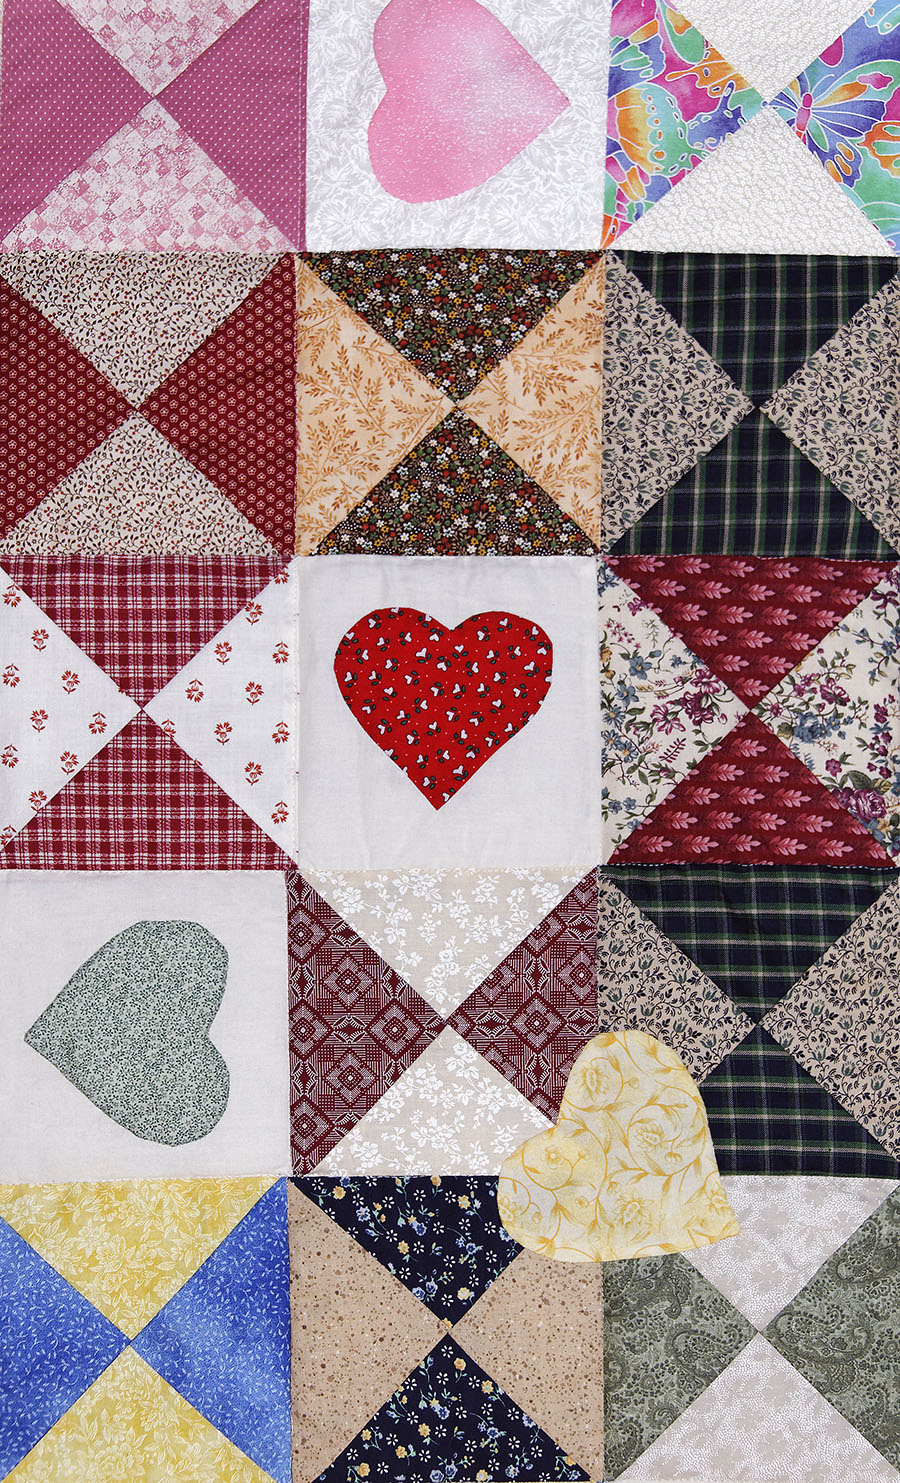 SOUTH BAY QUILTERS GUILD 2019 QUILT SHOW: DELECTABLE QUILTING DEEDS (South Bay Quilter's Guild)